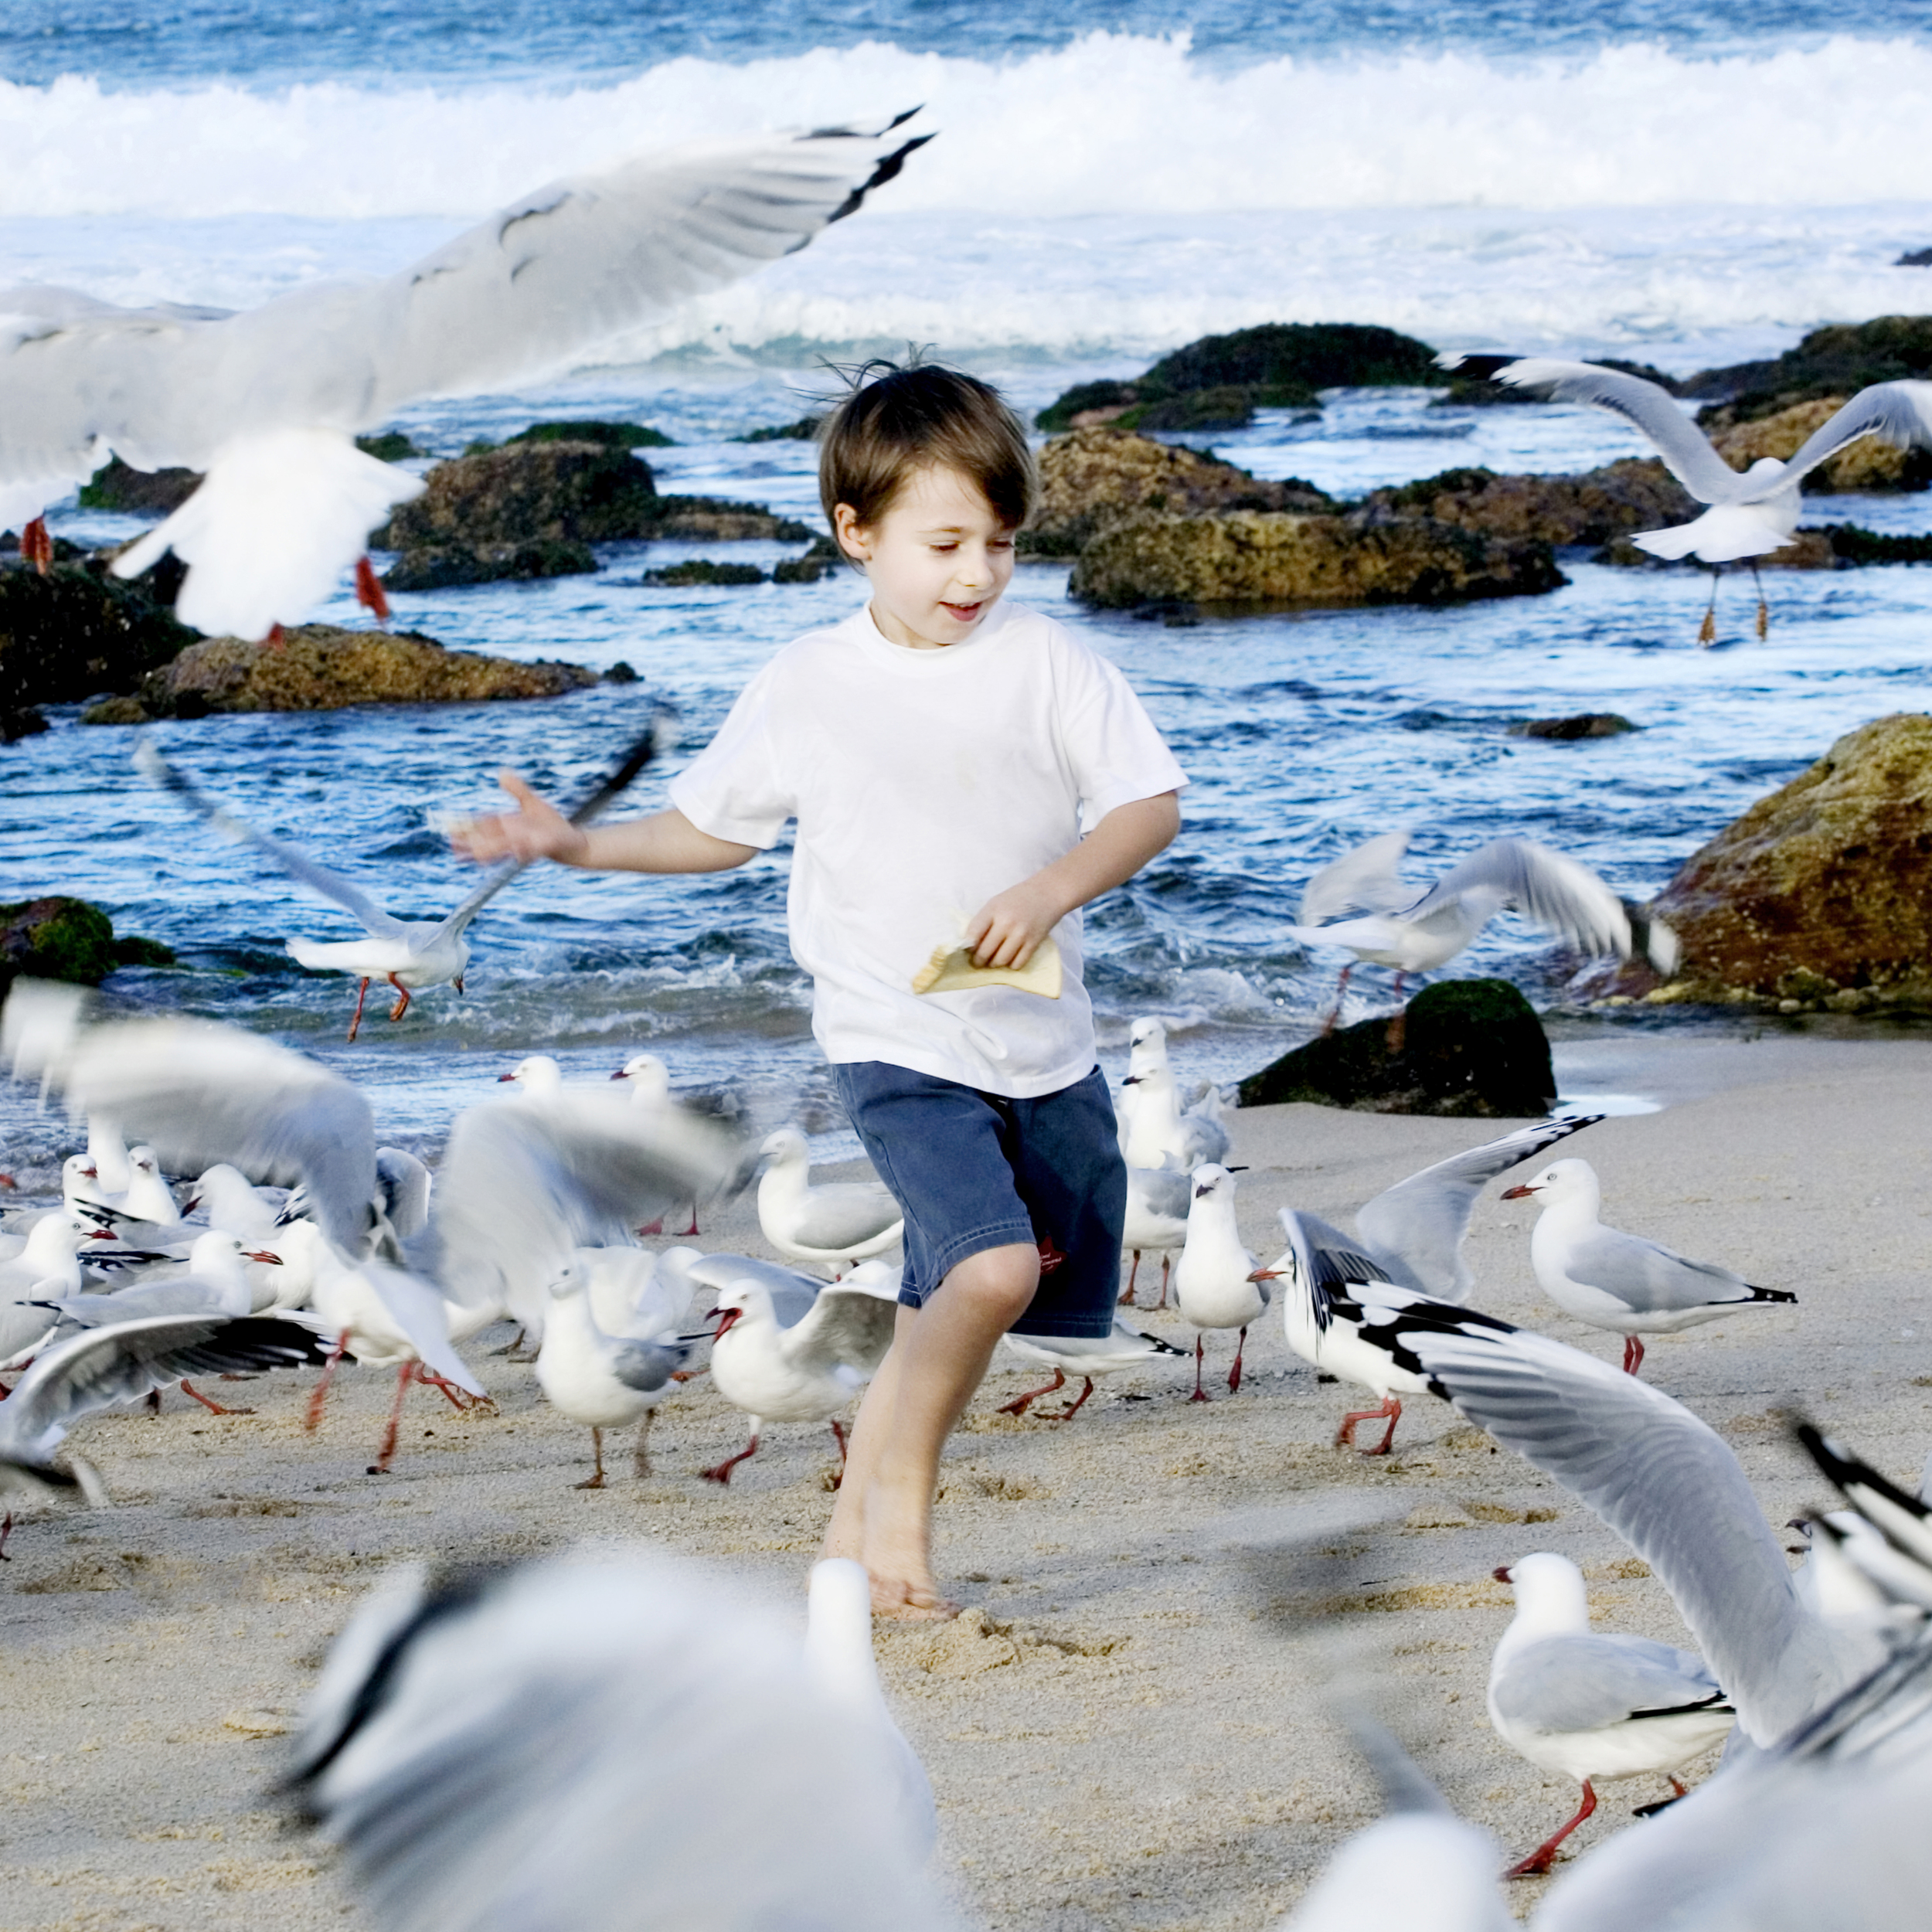 Boy with seagulls photo